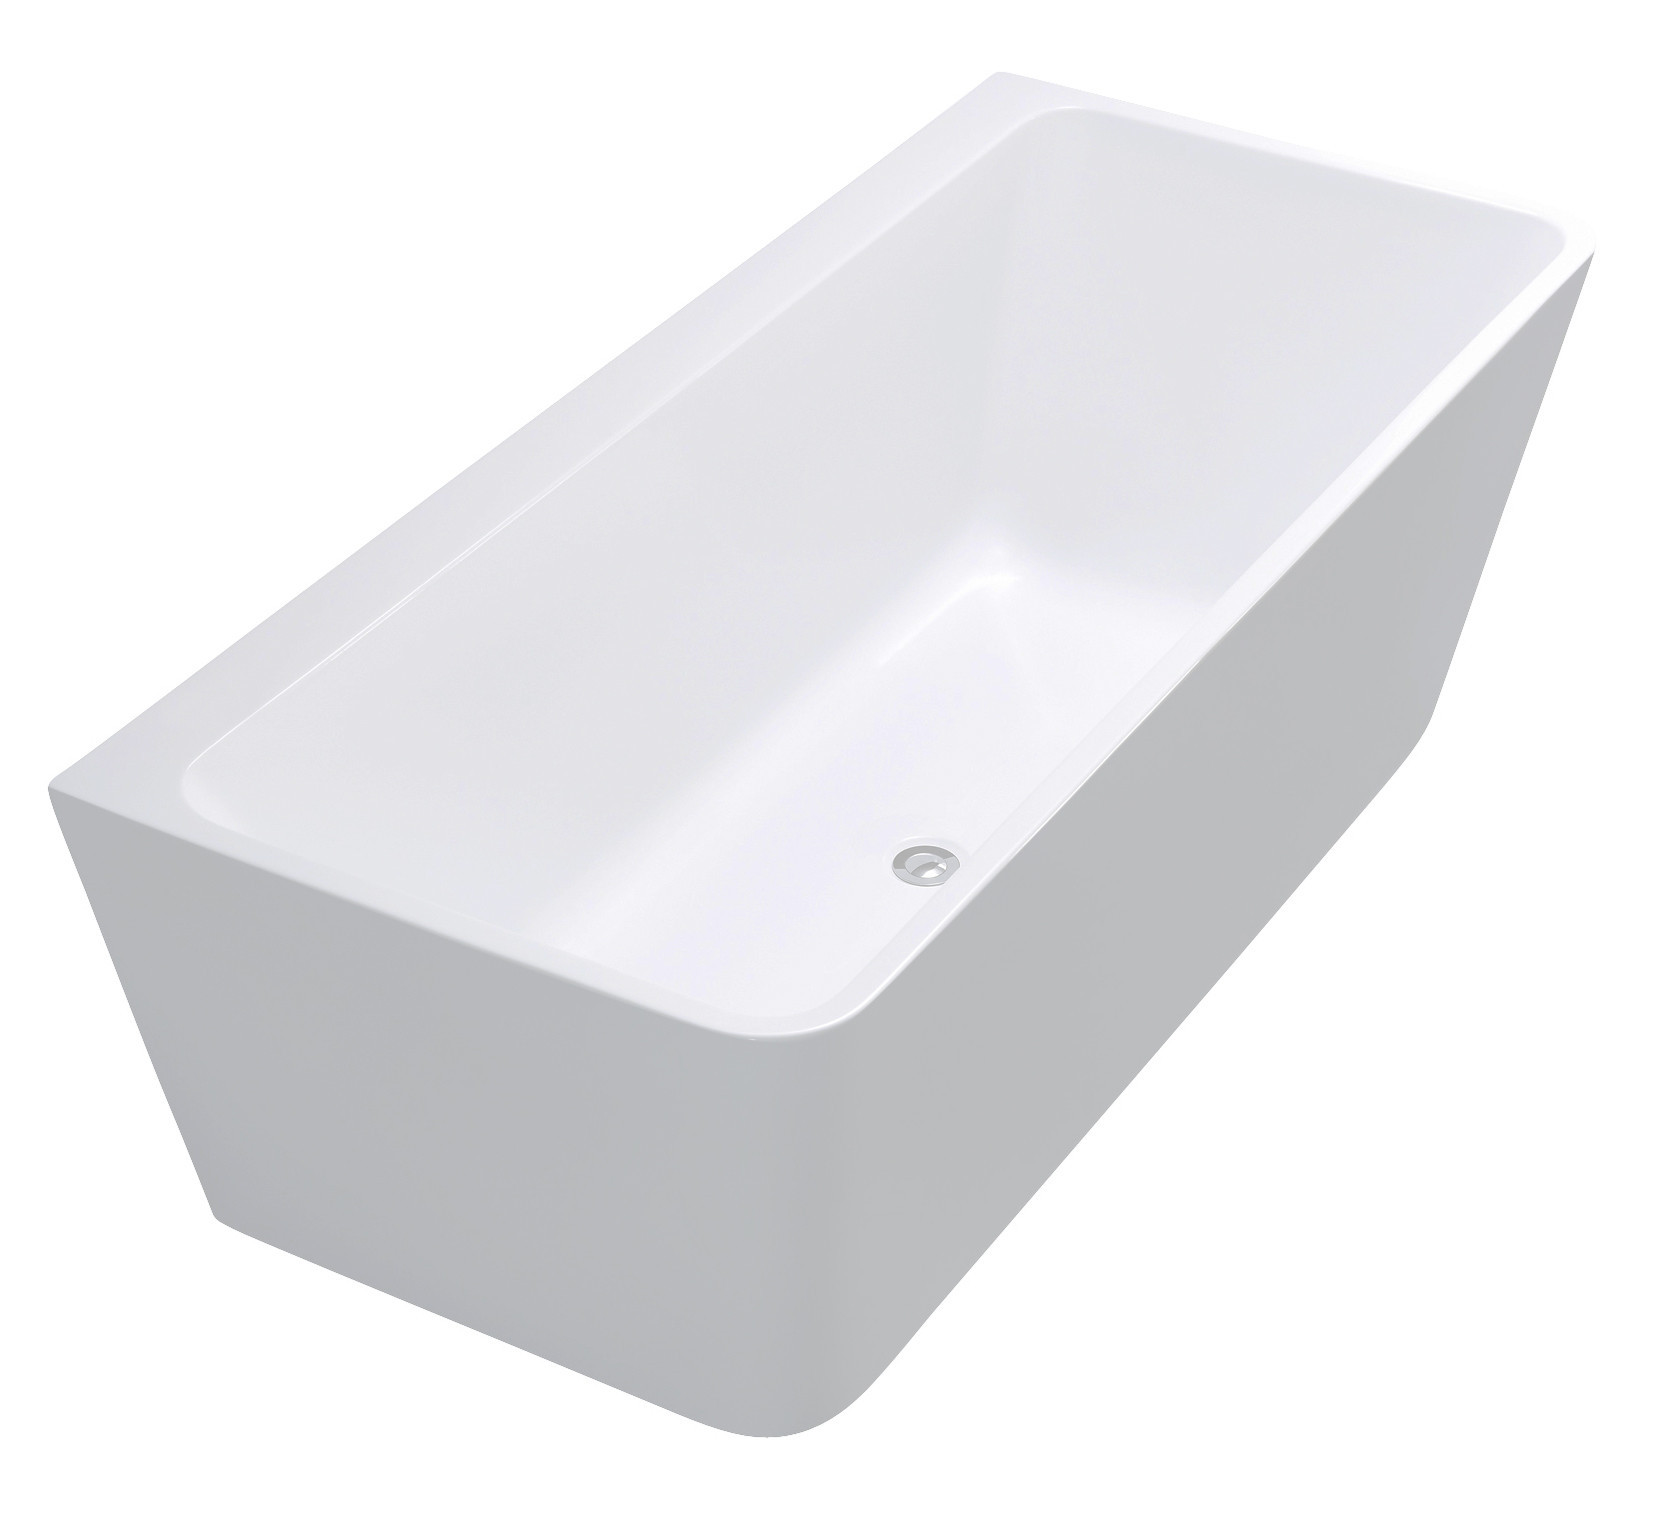 Anzzi FT-AZ109 Strait Series 5.58 ft. Freestanding Bathtub in White